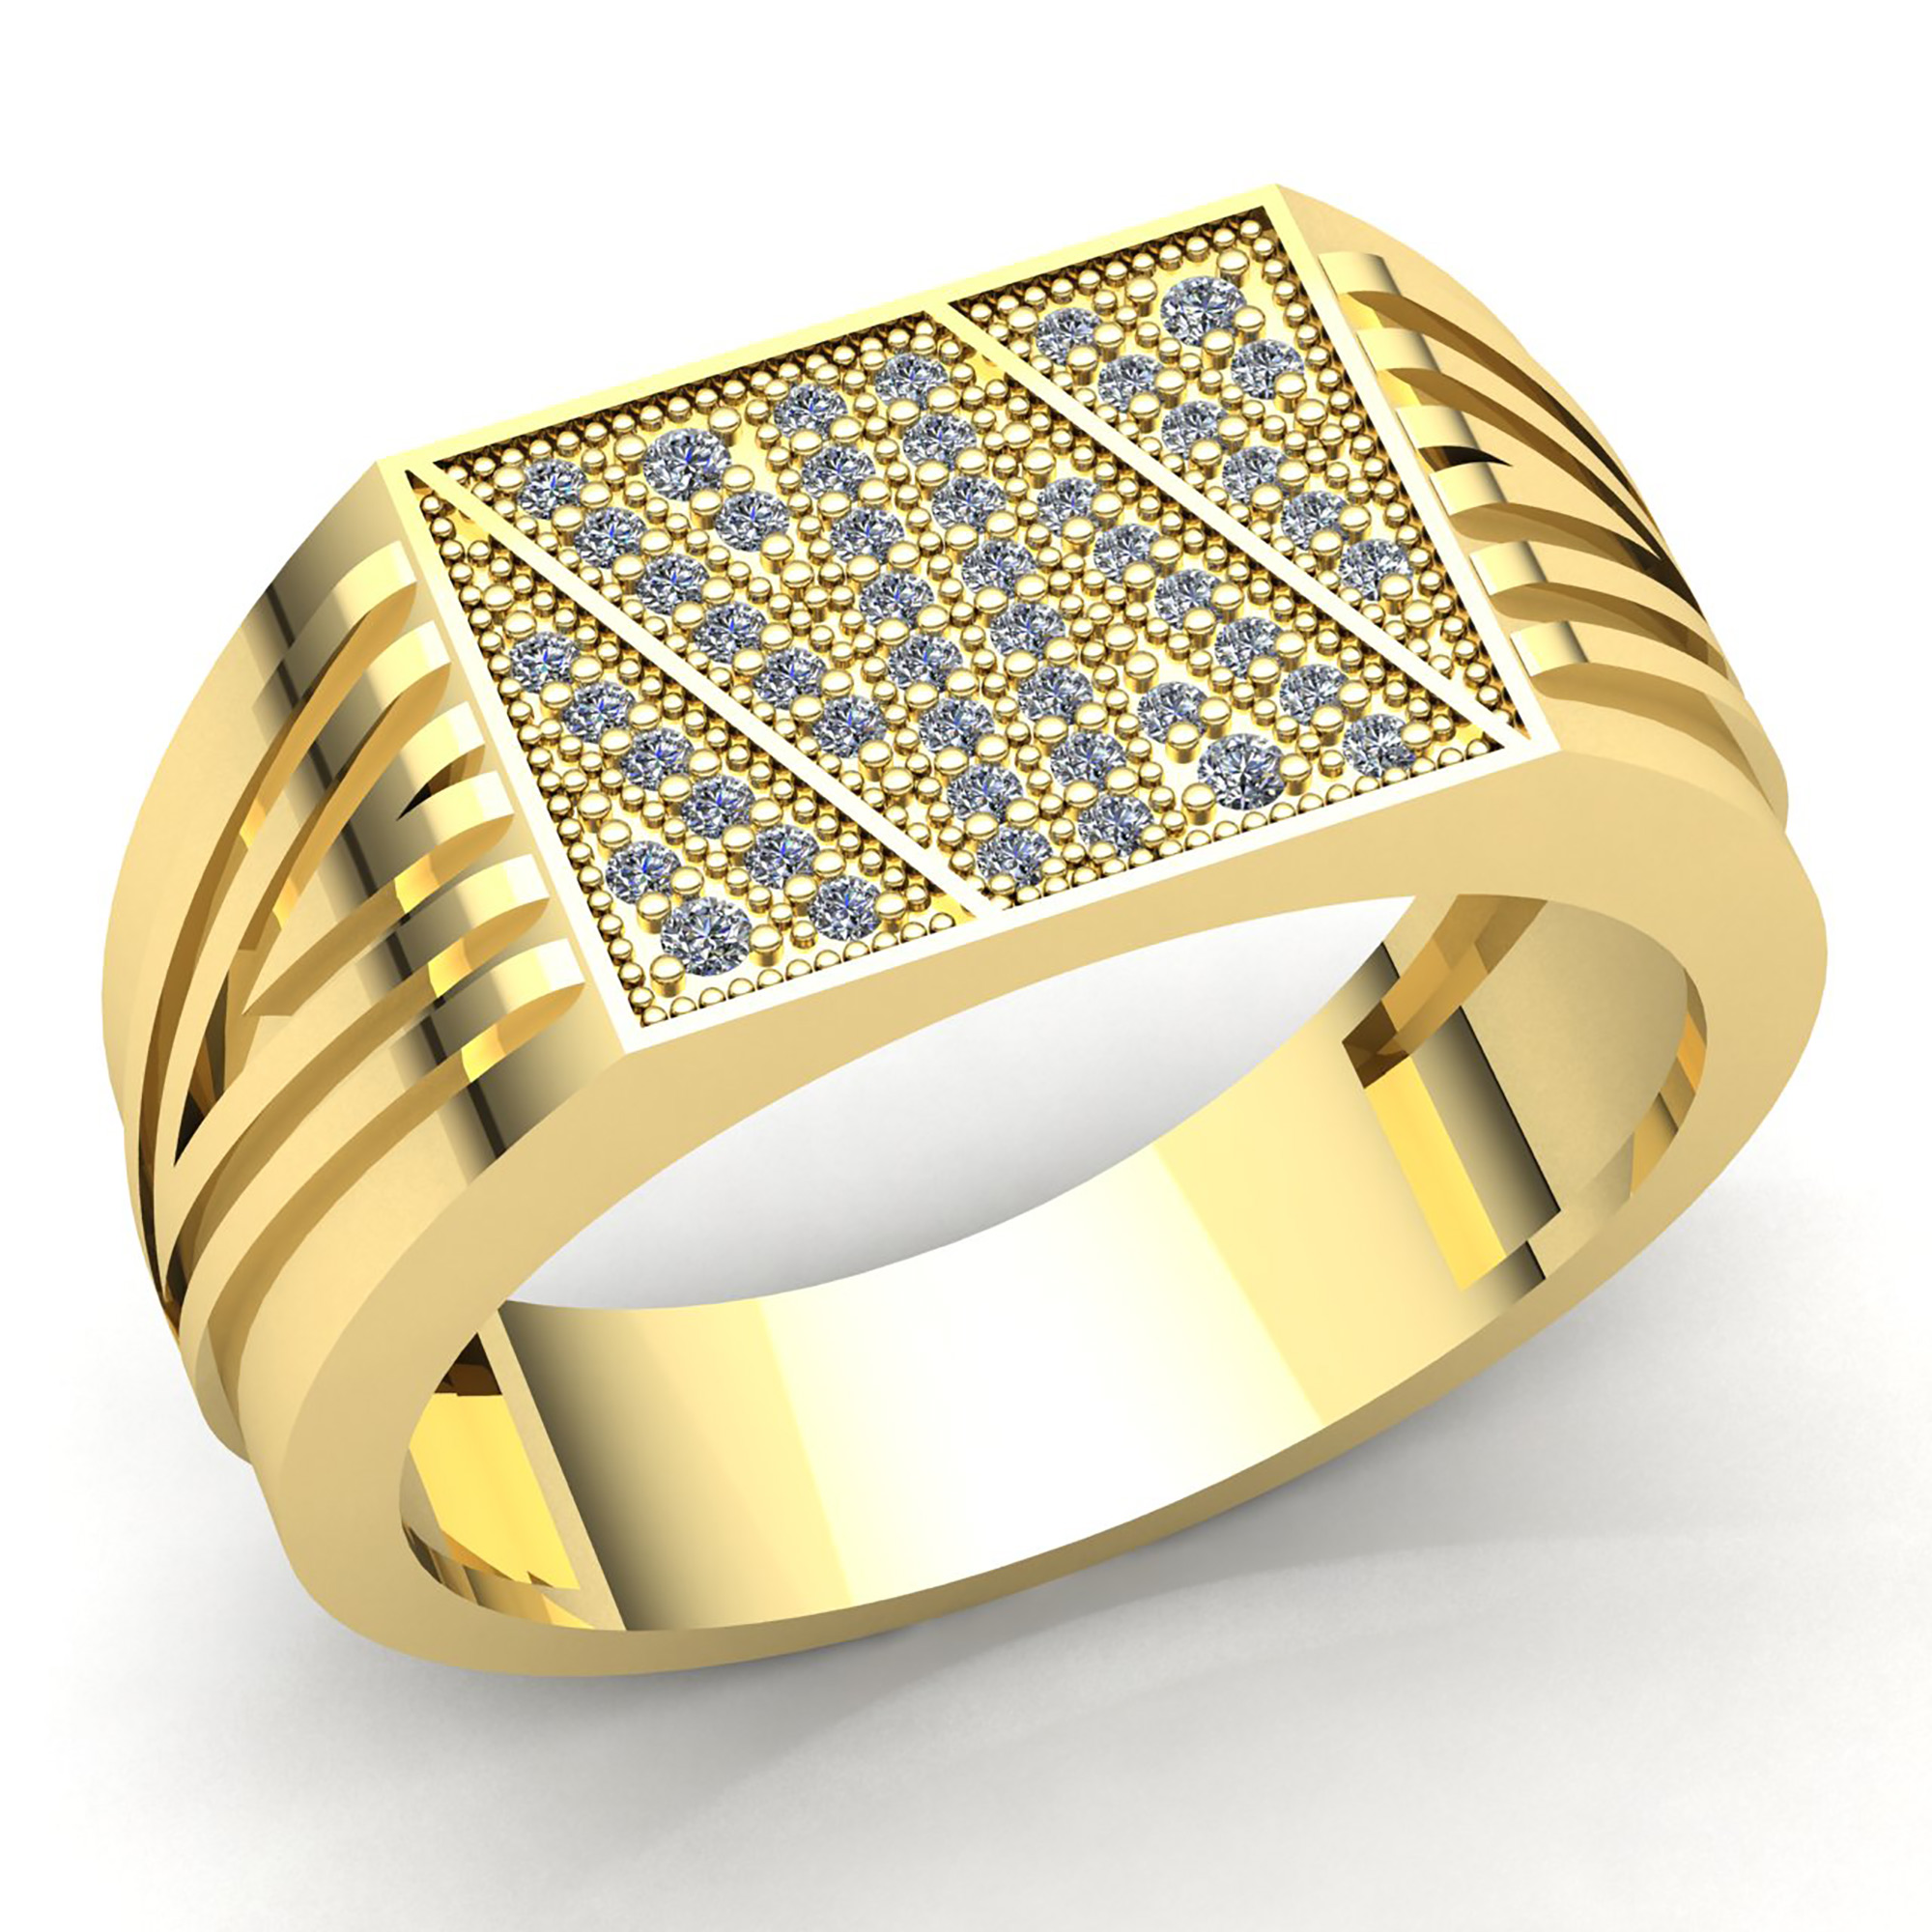 rings product six solitaire gold claw diamond gear yellow ring martin wedding jewellers